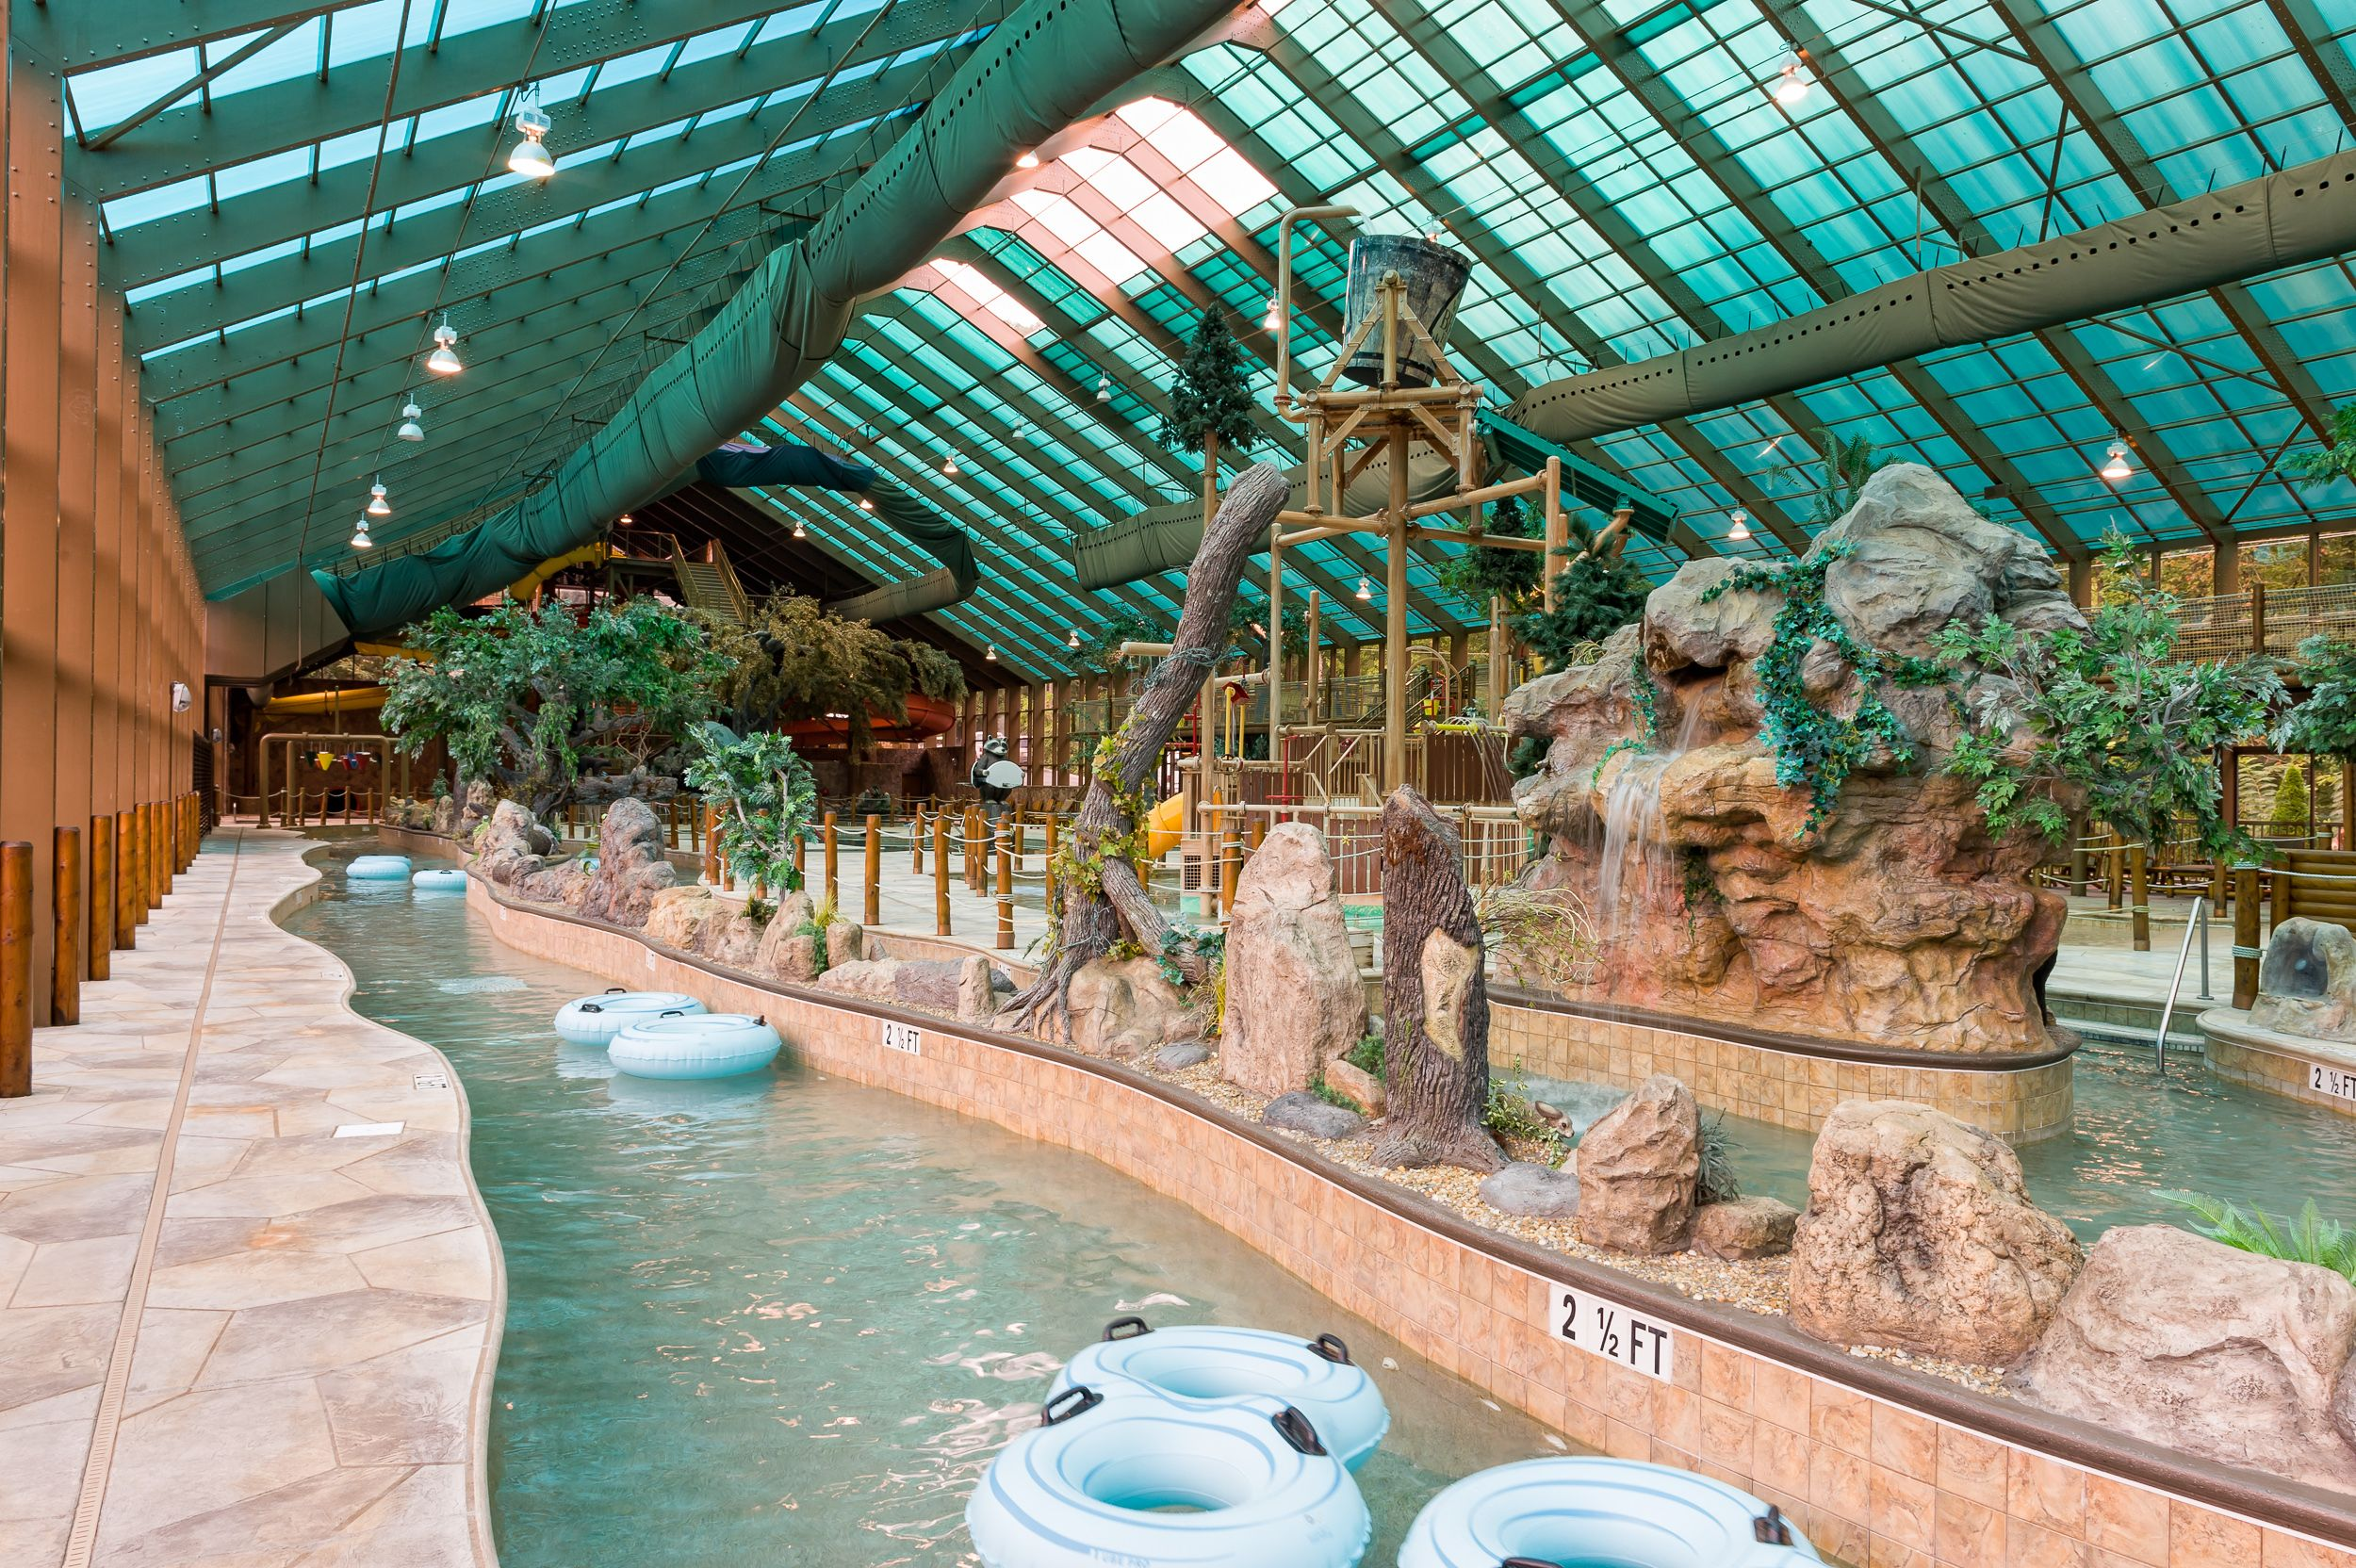 cabin the rentals cabins at in dippin tennessee theater mountains smoky with room testing skinny gatlinburg indoor pool of